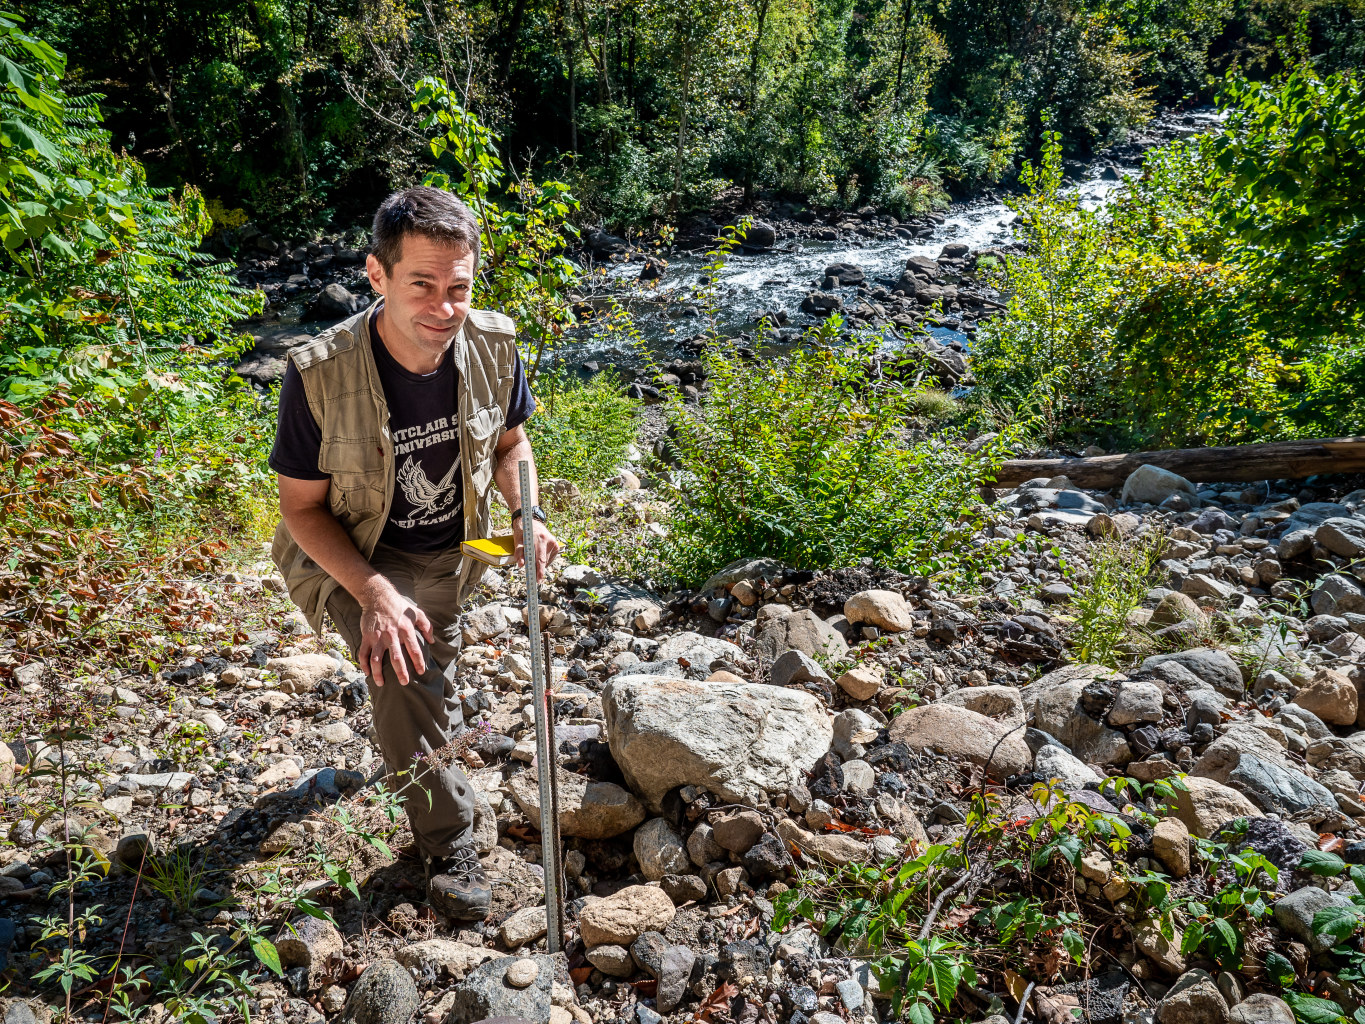 Joshua Galster studies how land use and climate change affect rivers and streams.